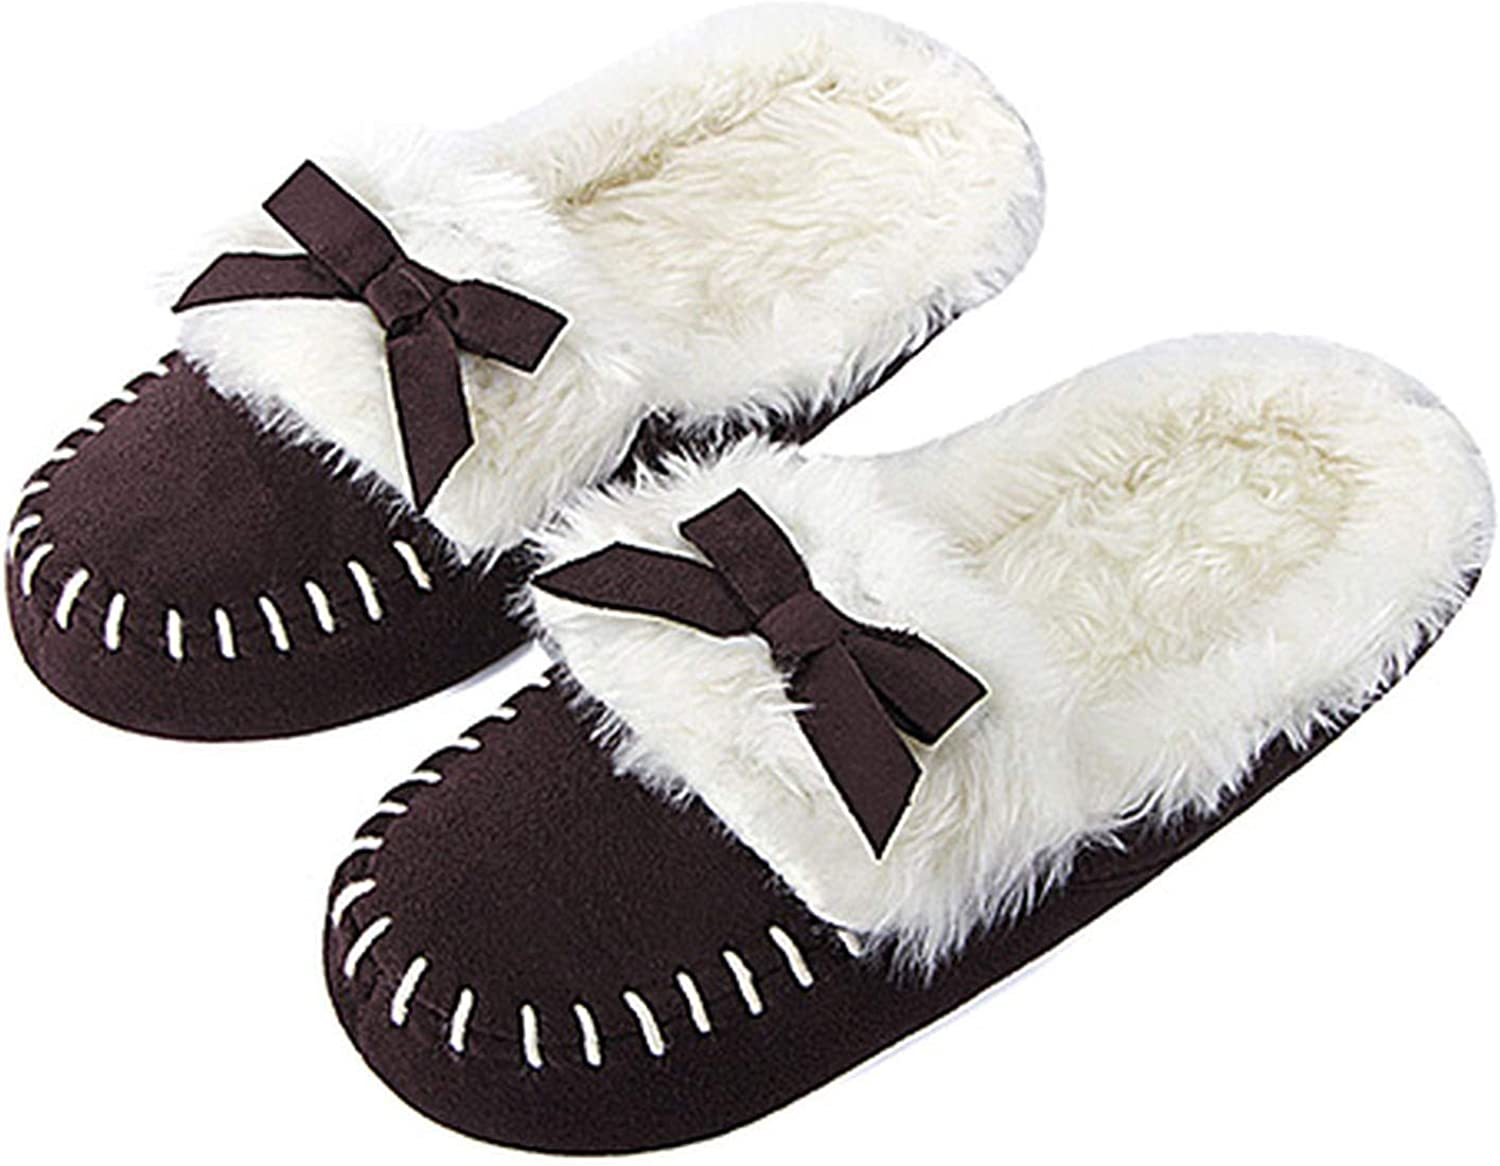 PilotageAuto Home Slippers Winter shoes Cute Bow Fur Indoor Floor shoes Cotton Plush Fluffy Slipper